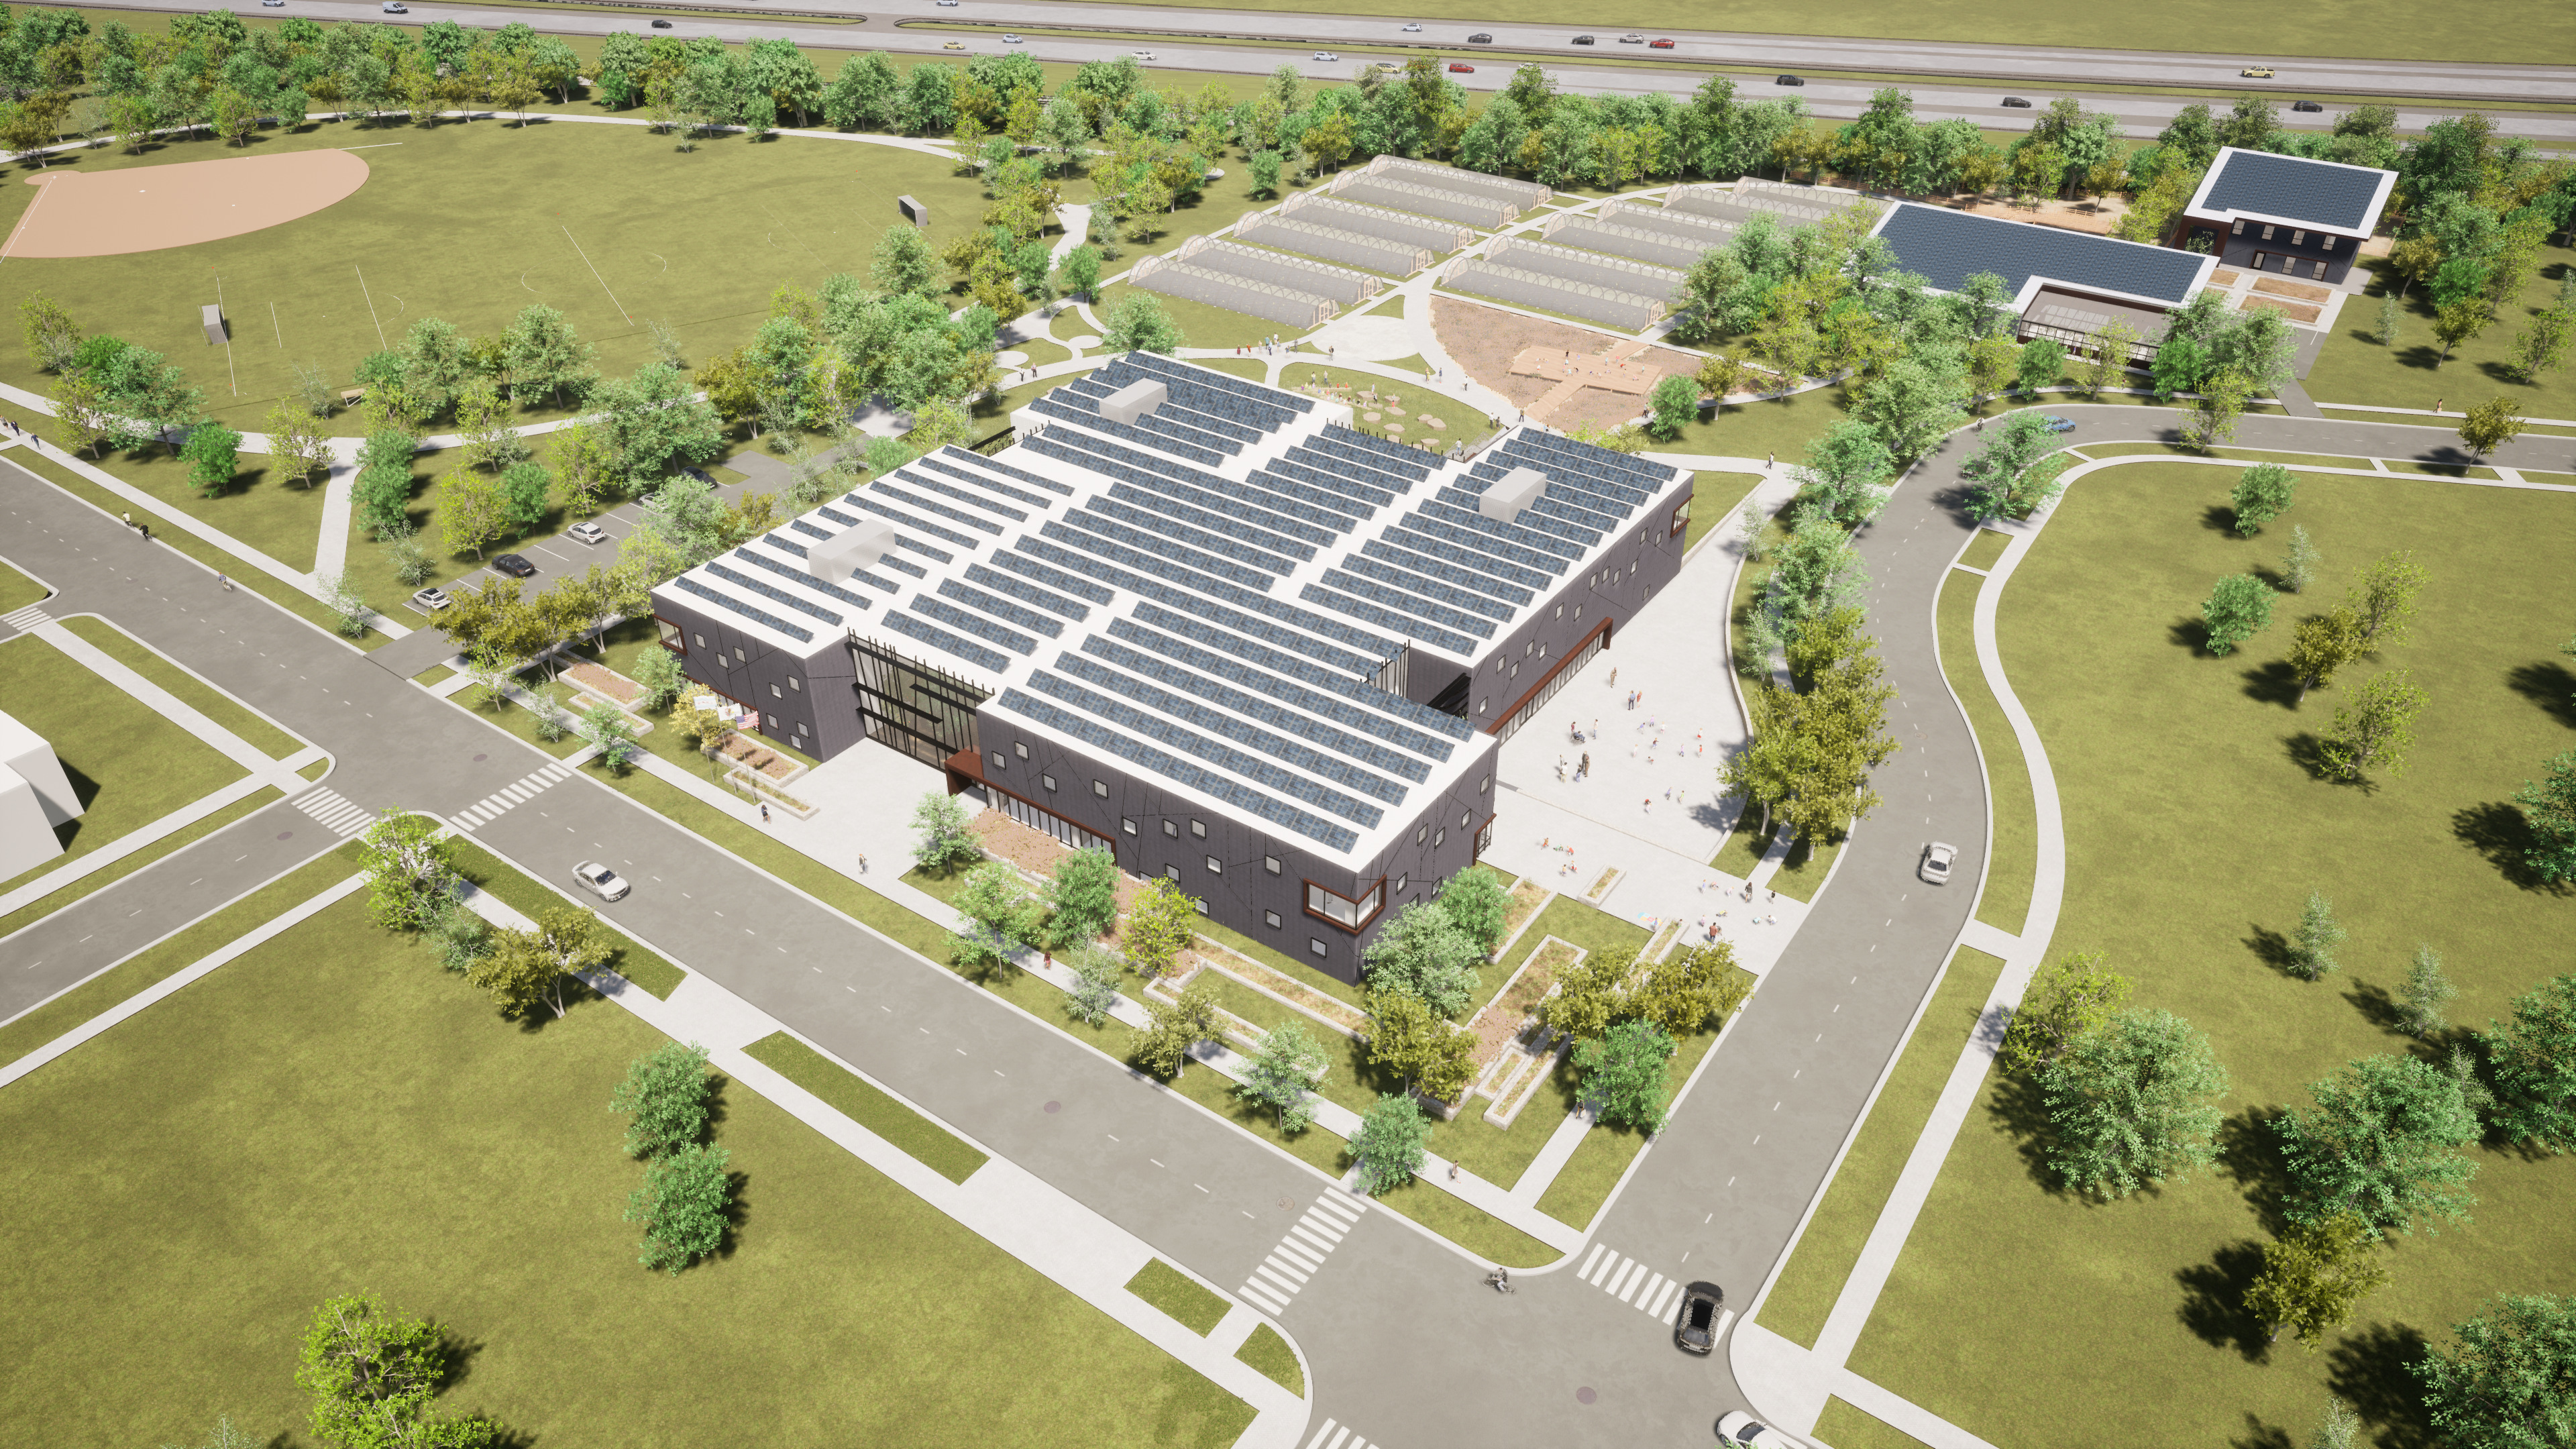 Rendering of Proposed AGC Campus